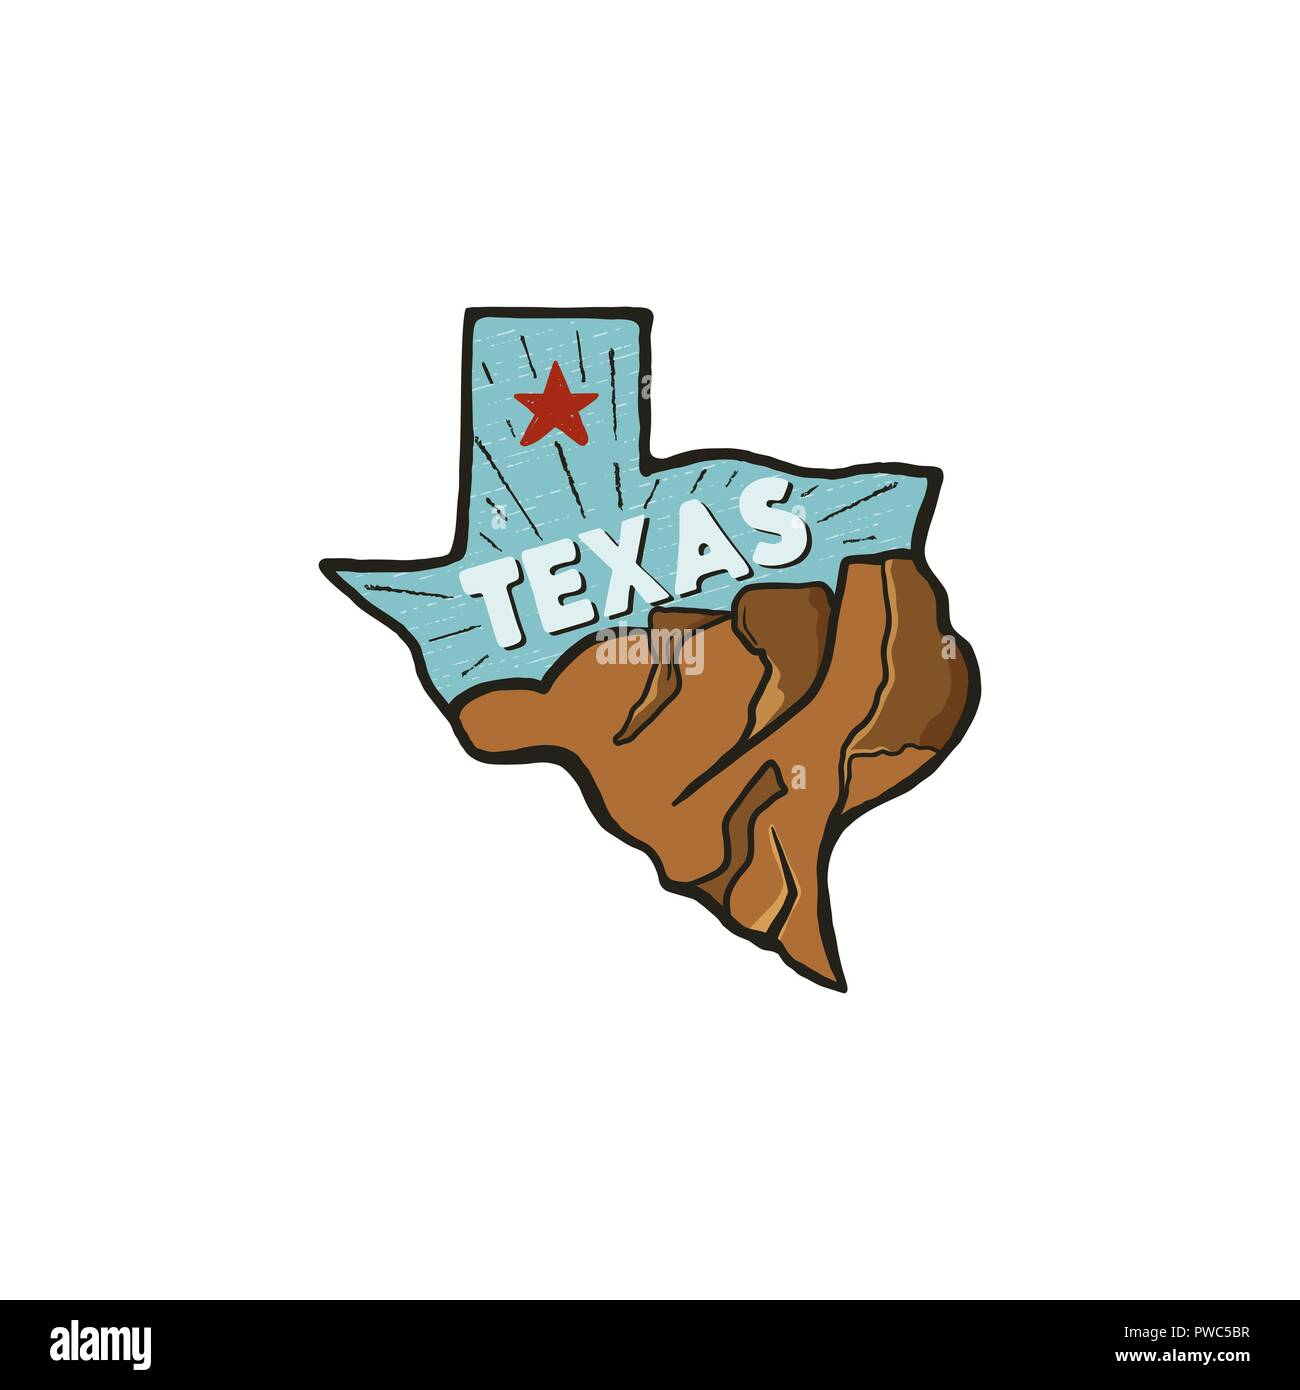 Dallas Vector Map Stock Photos & Dallas Vector Map Stock ... on flat map of united states, printable flat map, flat map pennsylvania, world map, sua flat map, america flat map, chantry flats map, flat globe, flat map of countries, flat map of asia, future of the united states map, usa map, a flat map, flat global map, 48 united states map, red state blue state map, flat europe map, empty states map, flat continent map, globe flattened to map,